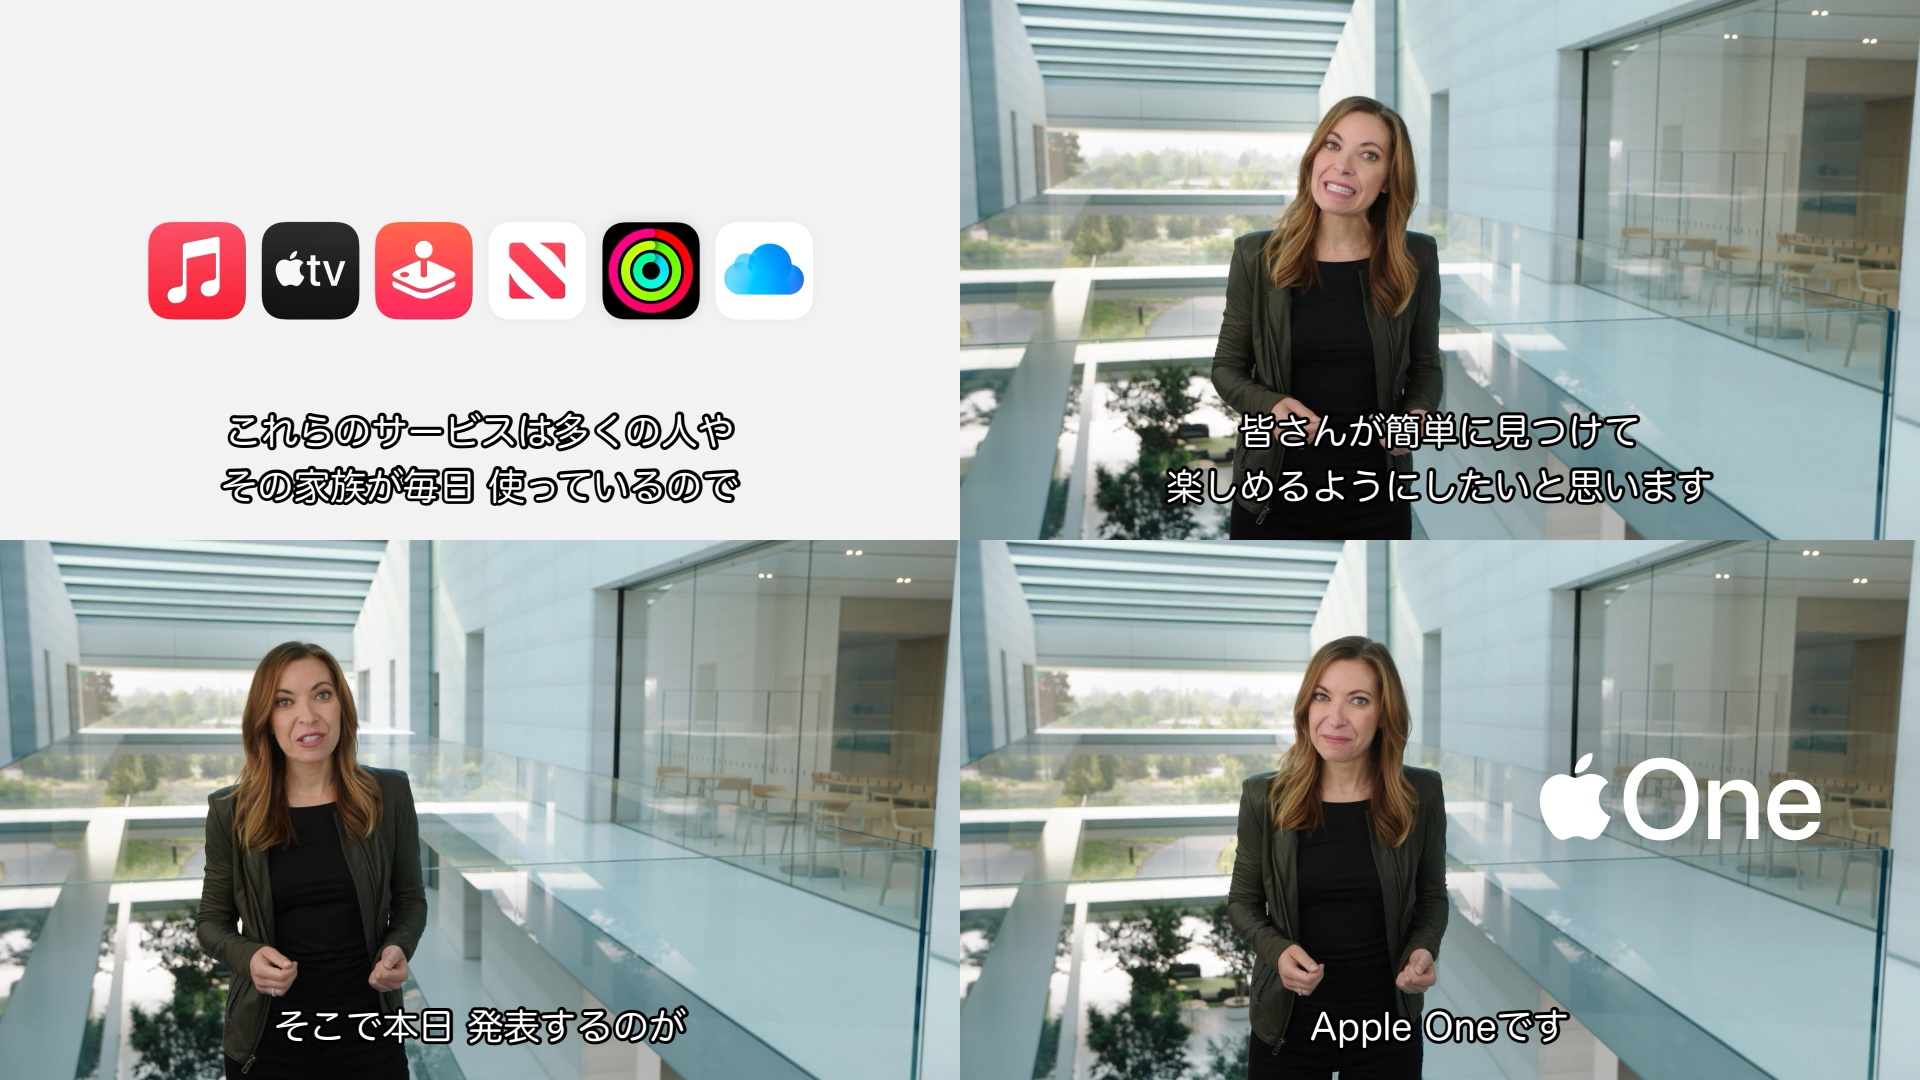 About Apple One